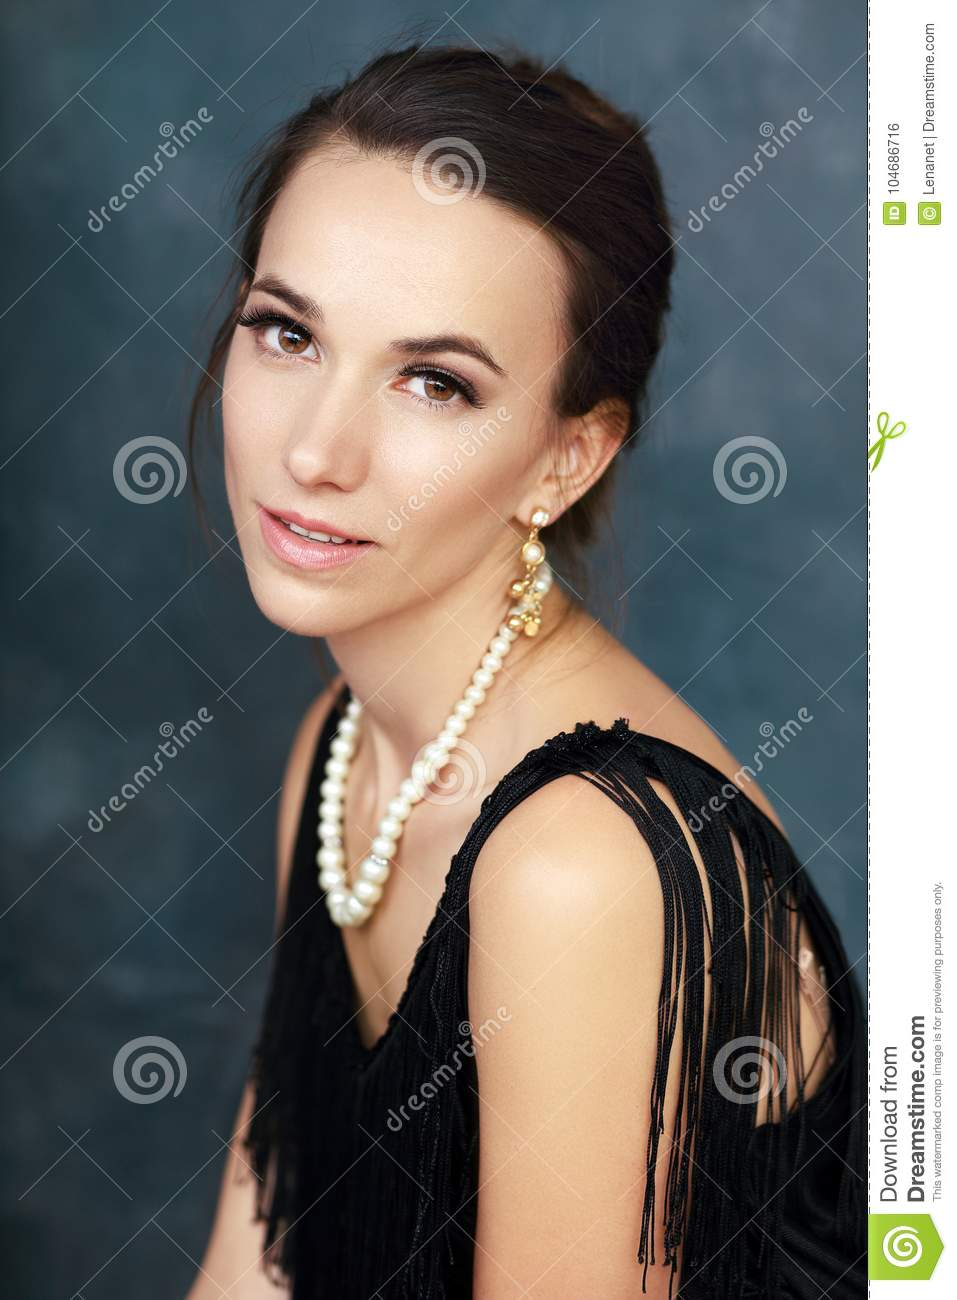 3568f02632d Half length portrait of beautiful young elegant woman with pearls in black  dress posing next to color background